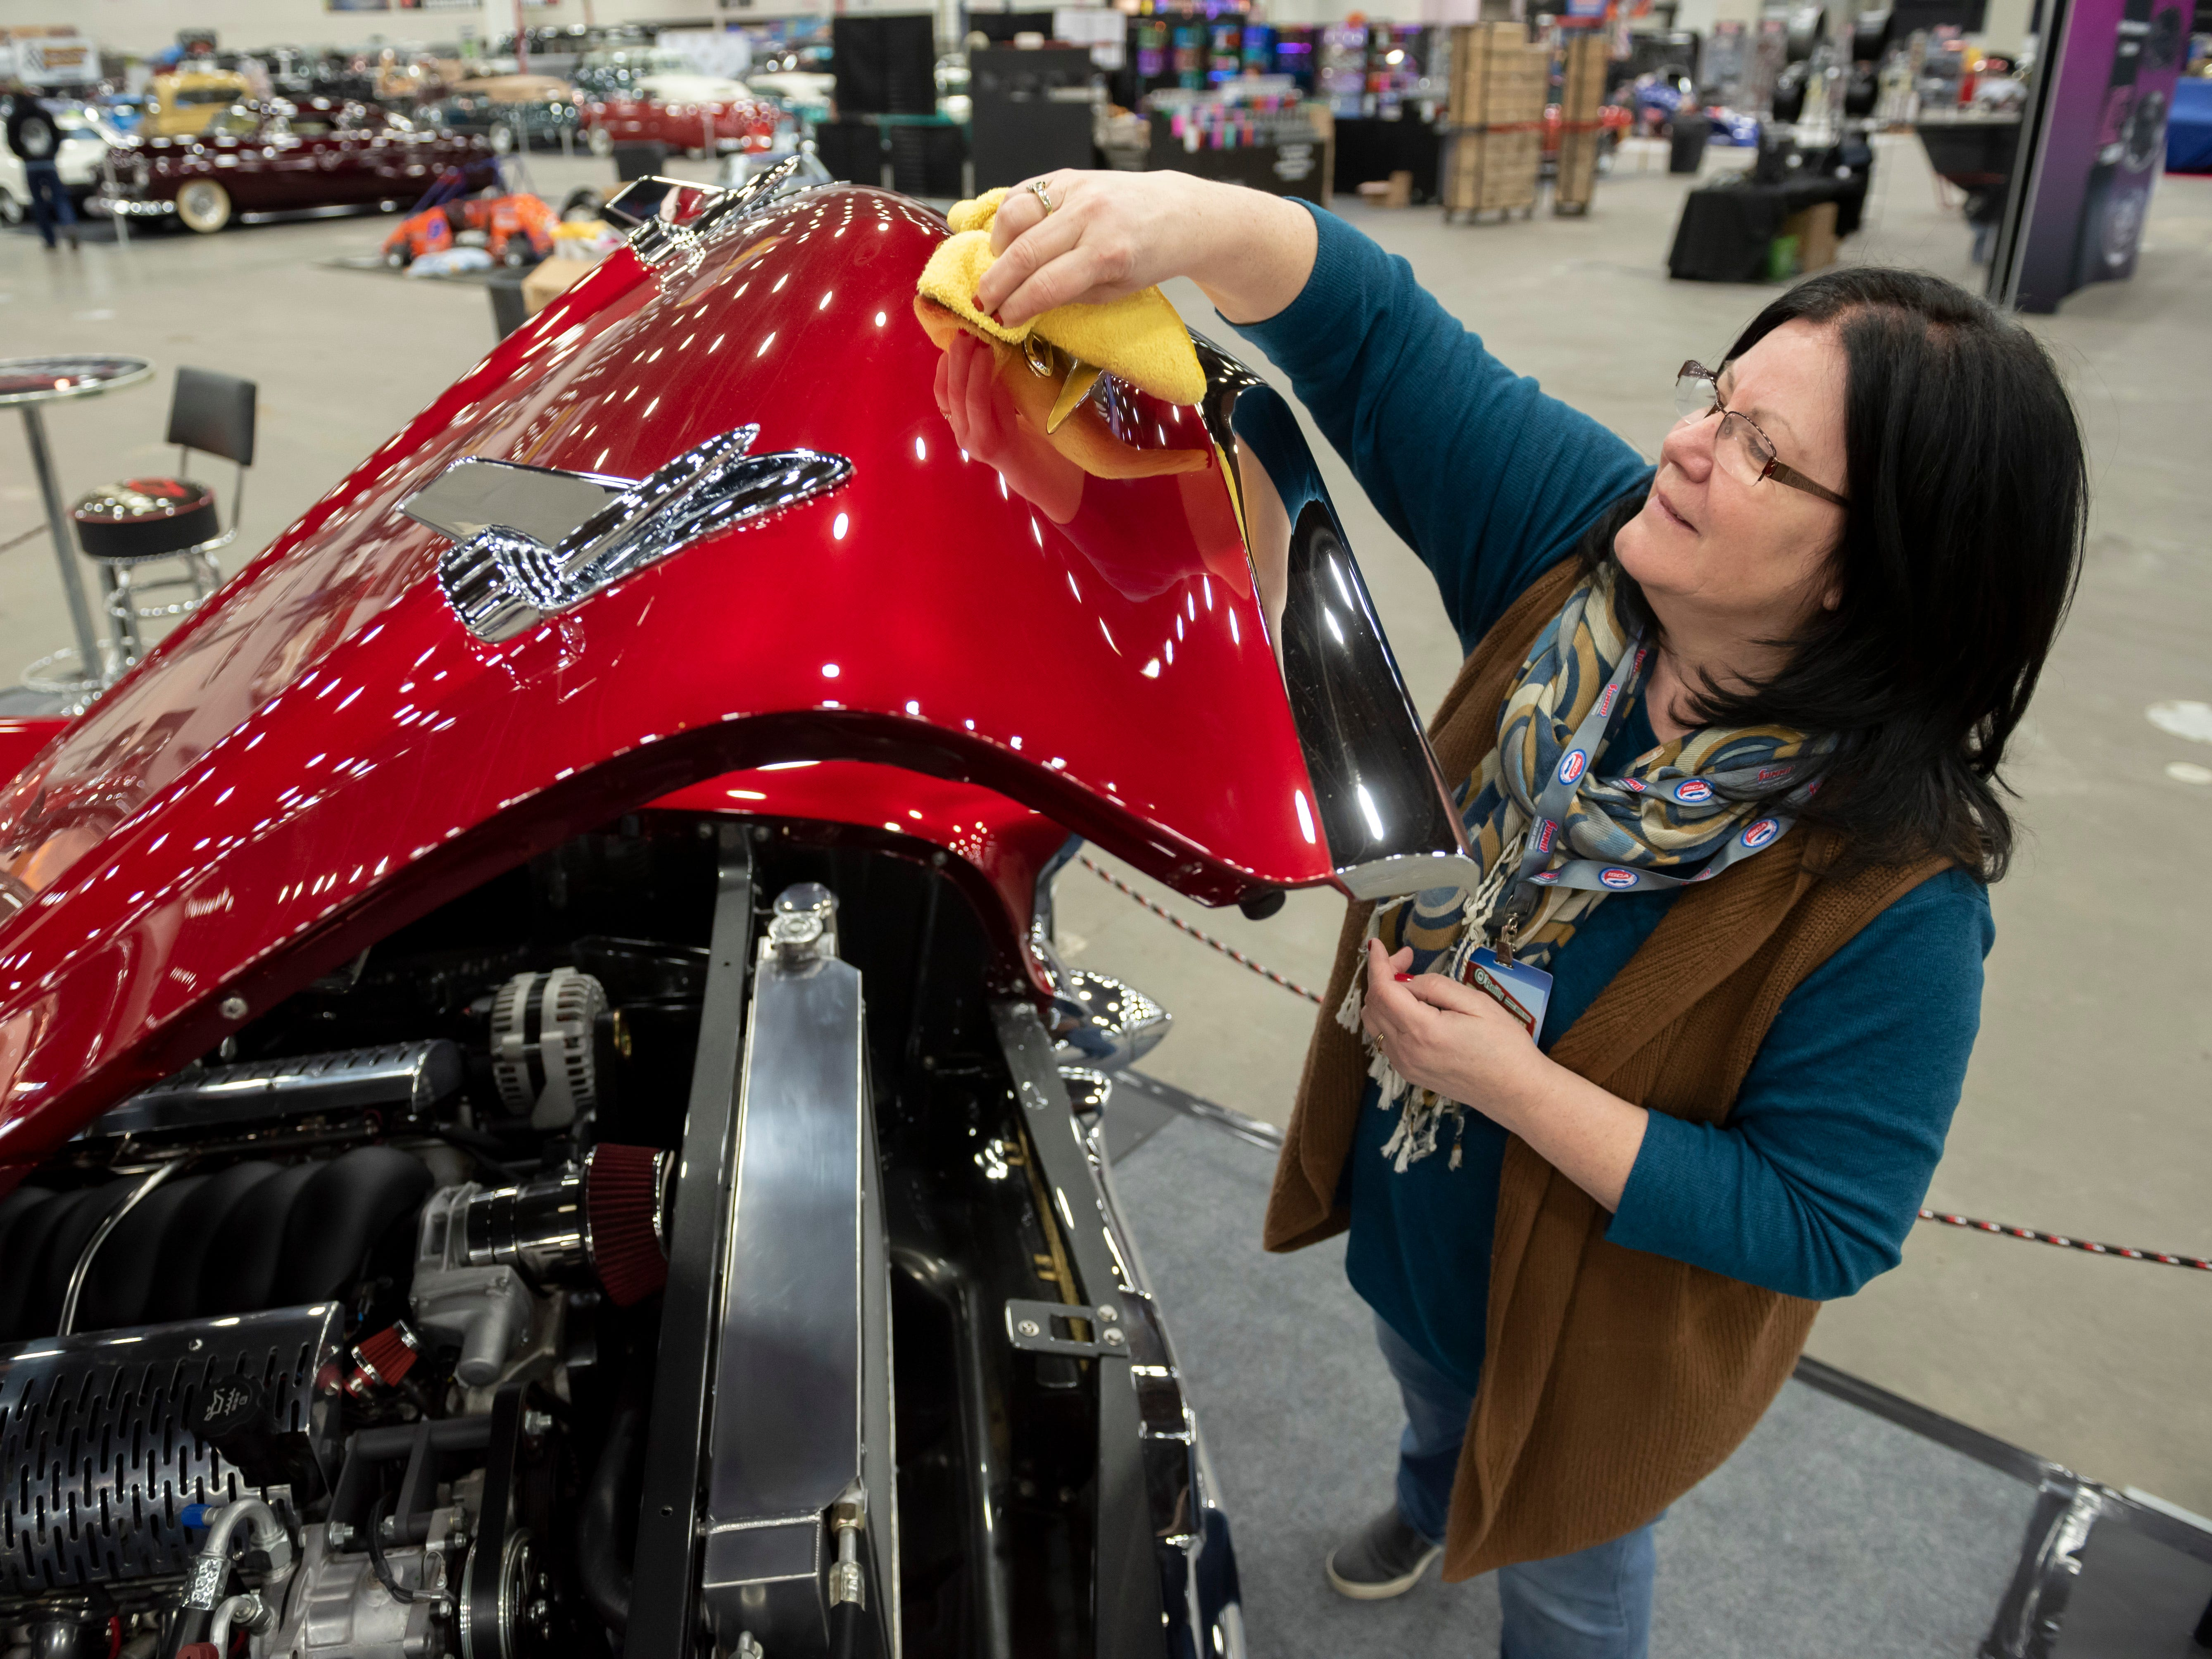 Patty Wiegand, of Richmond, polishes the hood of her 1957 Chevy Bel Air convertible.